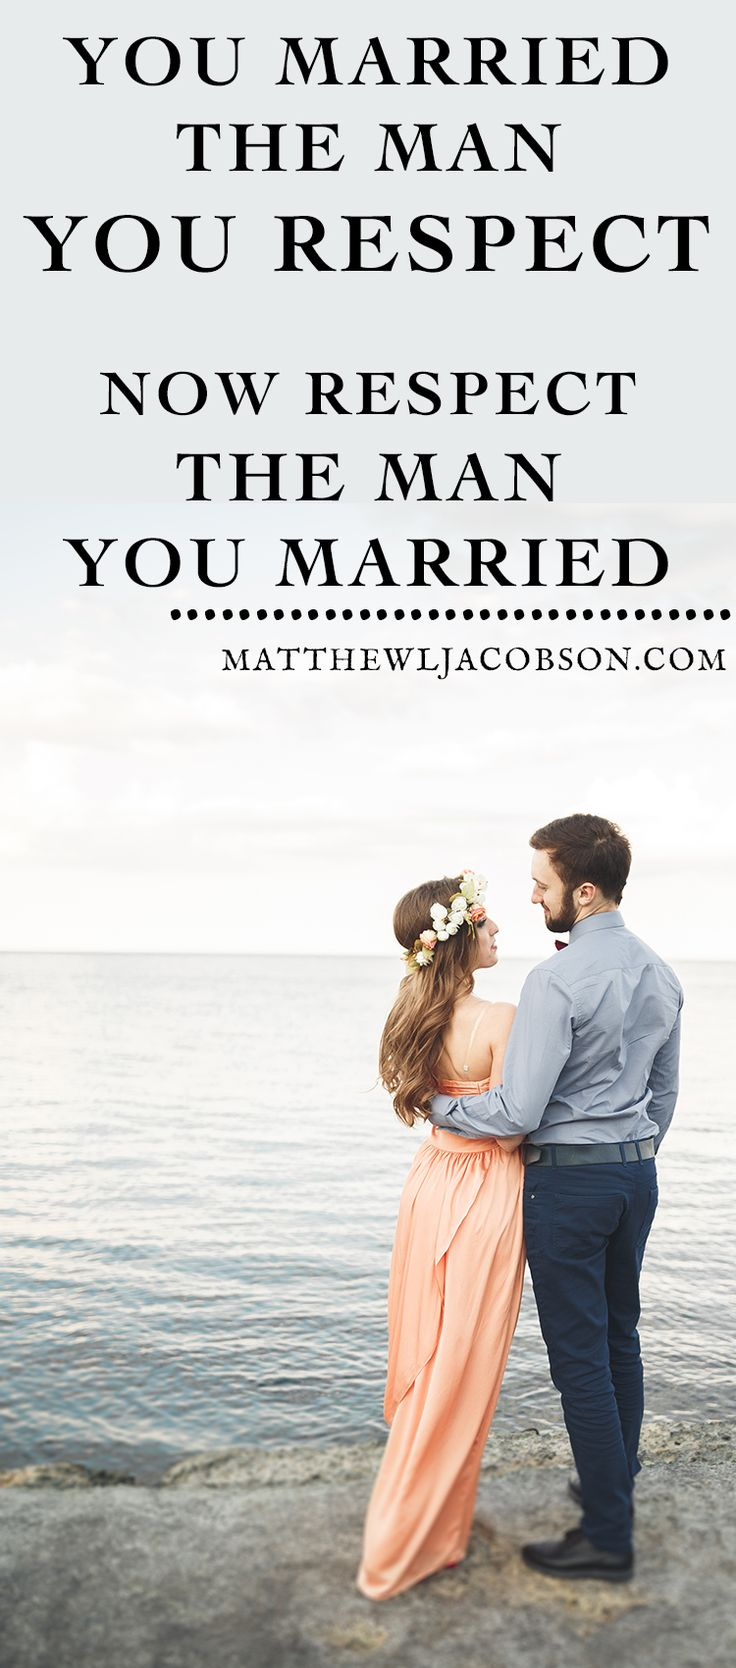 Quotes About Love You Married The Man You Respect Quotes